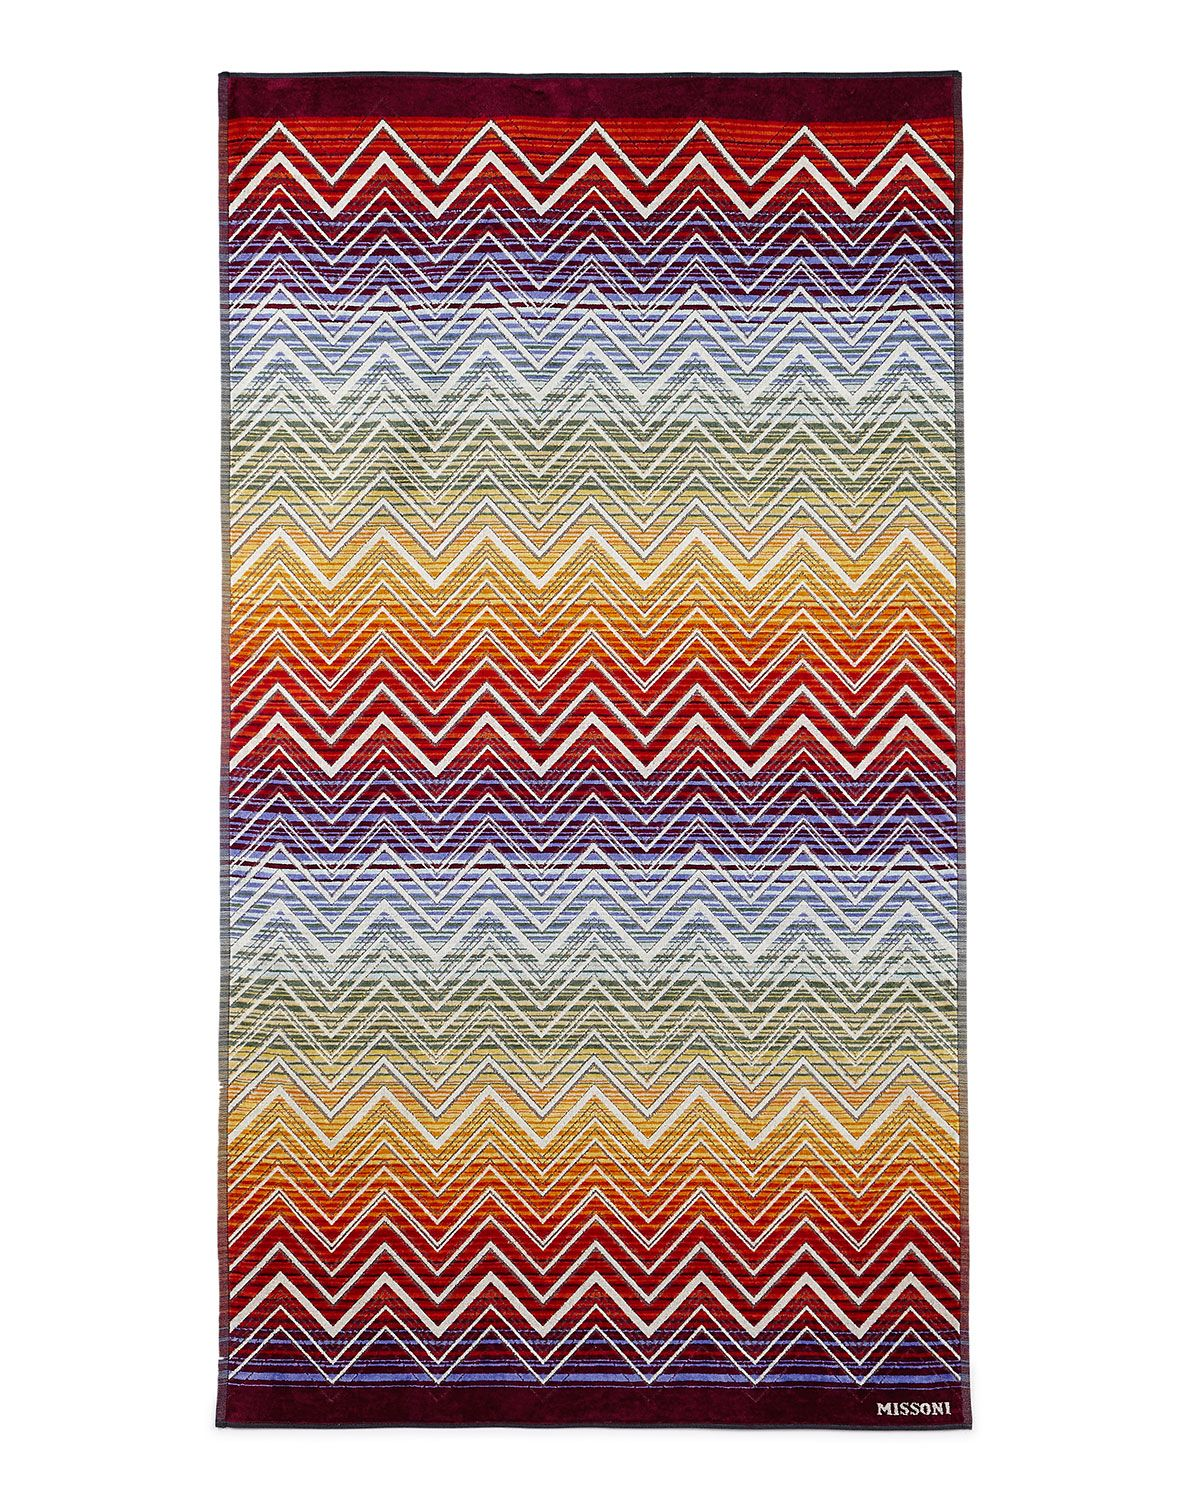 """<p>Crafted in luxe cotton, an oversized towel functions as a de facto beach blanket that you won't mind wrapping up in.</p><p><em data-redactor-tag=""""em"""" data-verified=""""redactor"""">Missoni Tolomeo Beach Towel, $248; </em><a href=""""http://www.neimanmarcus.com/Missoni-Tolomeo-Beach-Towel/prod199760044/p.prod"""" target=""""_blank"""" data-tracking-id=""""recirc-text-link""""><em data-redactor-tag=""""em"""" data-verified=""""redactor"""">neimanmarcus.com</em></a></p><p><a href=""""http://www.neimanmarcus.com/Missoni-Tolomeo-Beach-Towel/prod199760044/p.prod"""" target=""""_blank"""" data-tracking-id=""""recirc-text-link""""></a></p>"""